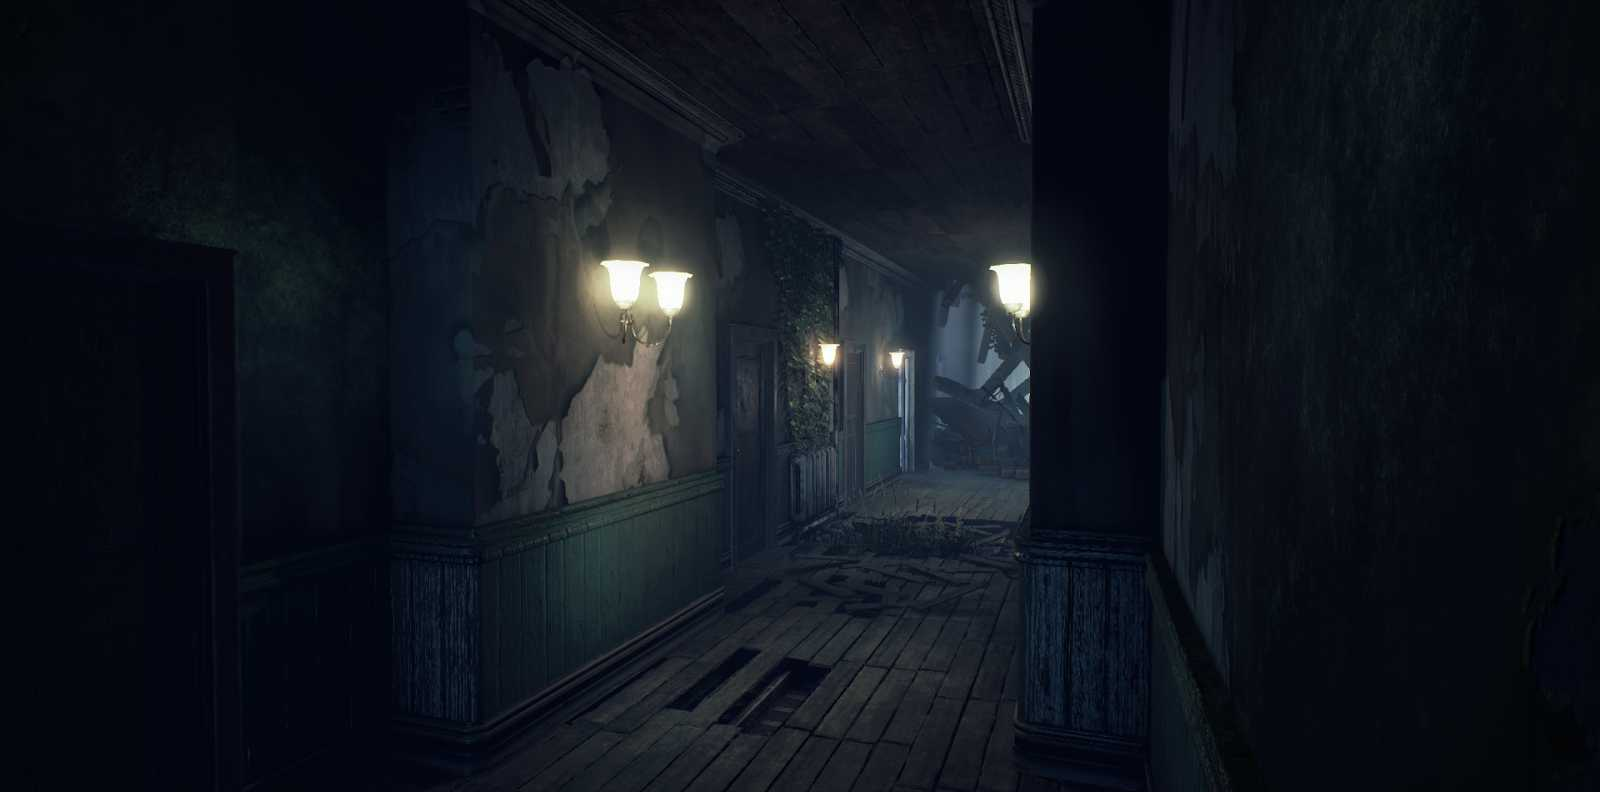 Relapse: How to Build Content for Horror Games